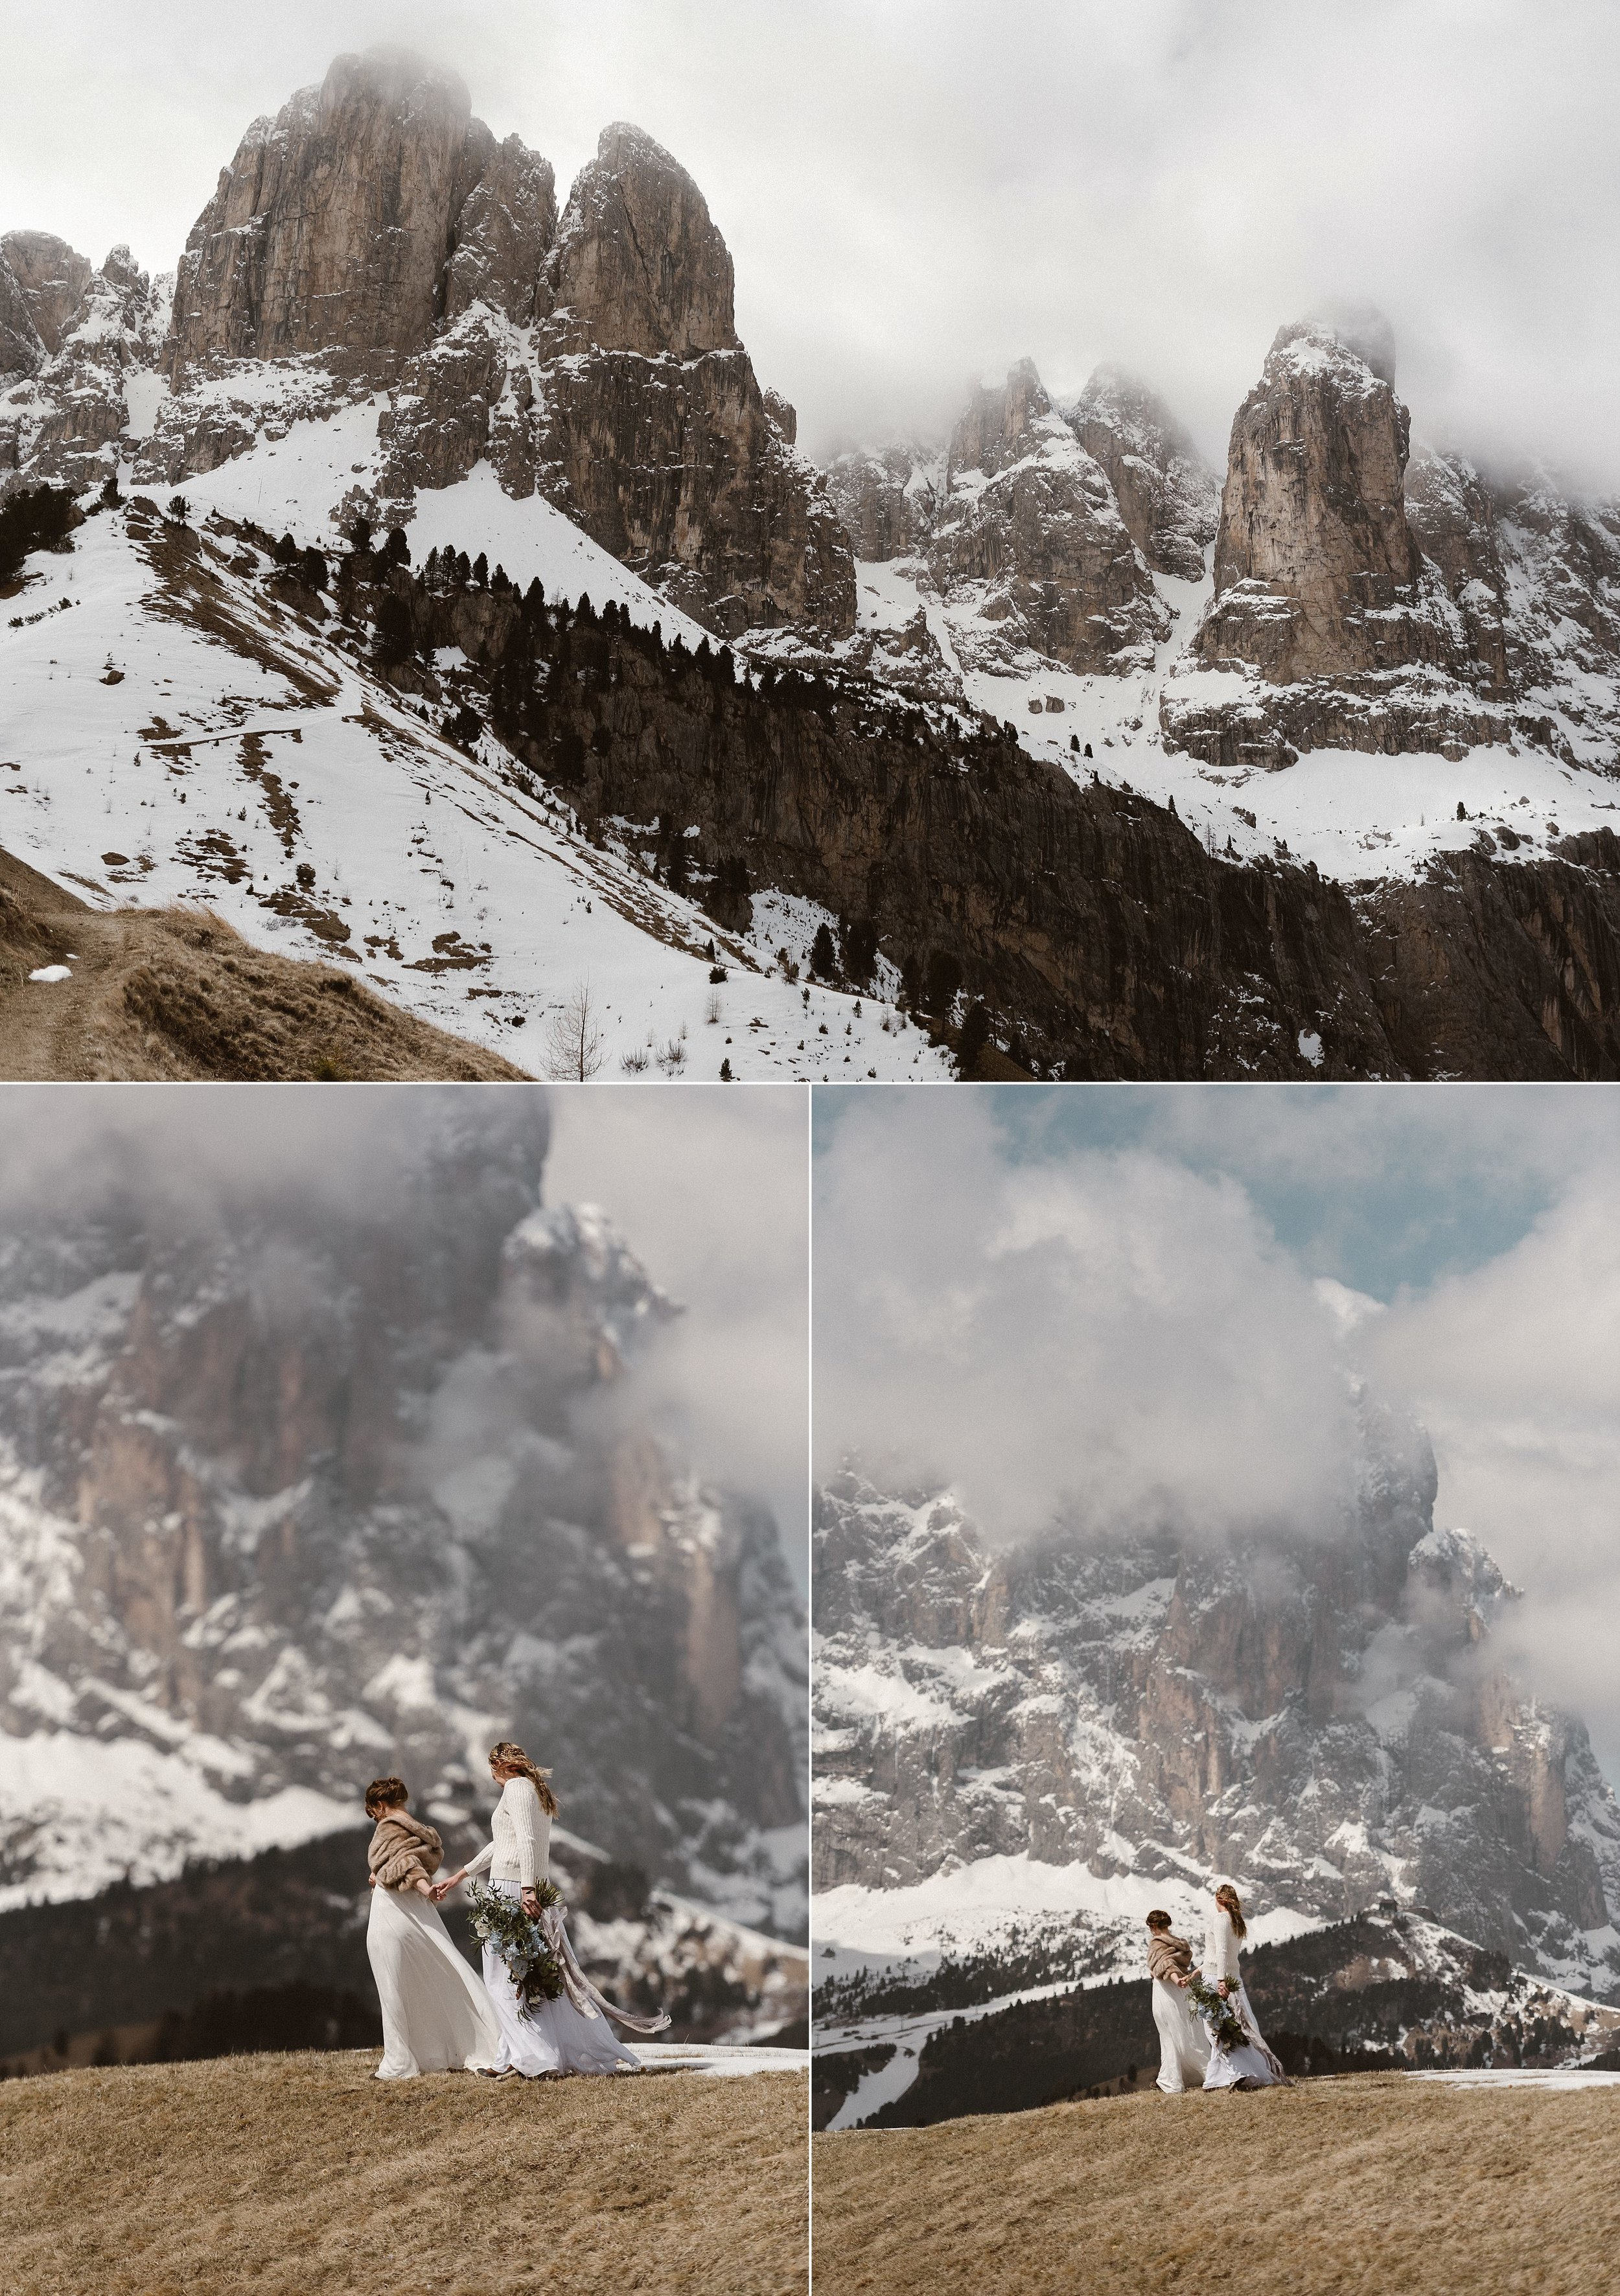 As the fog began to roll out from the highest peaks of the Dolomites and the wind began to pick up, these adventurous brides continued wandering through the foot hills with an oversized bouquet to find their perfect intimate elopement ceremony location. Photos by Maddie Mae Photography.